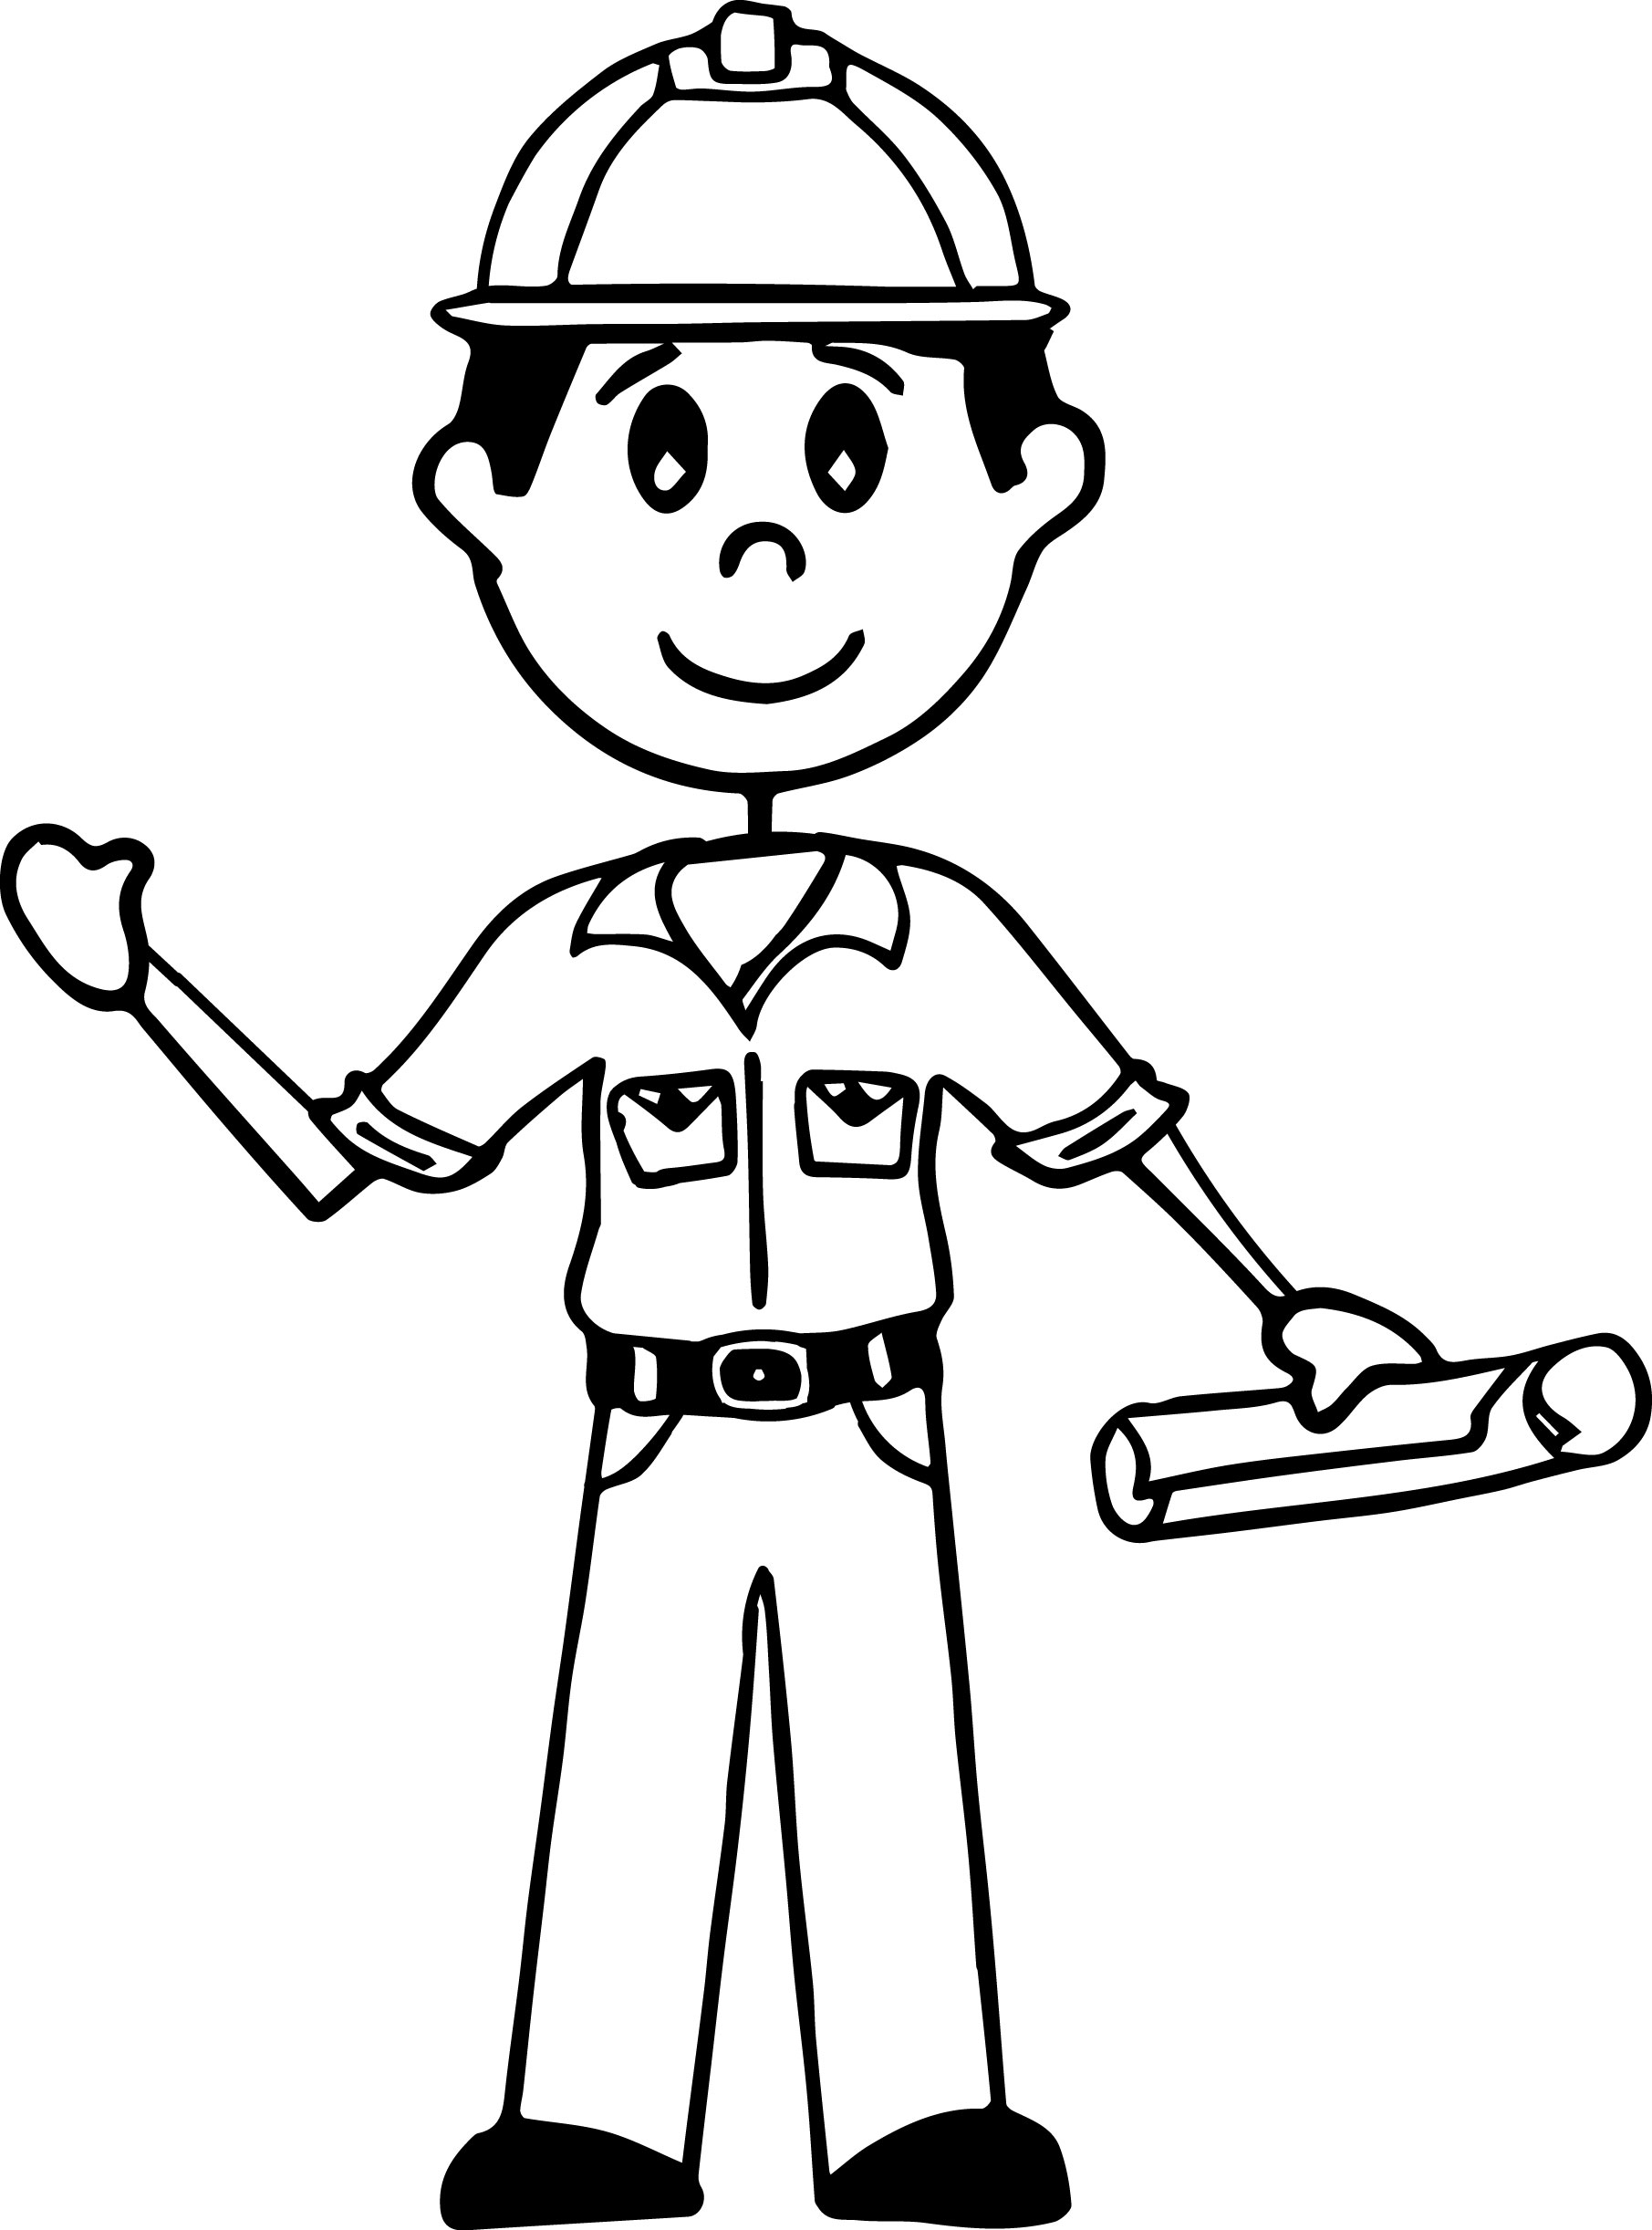 1811x2444 Illustration Of An African American Stick Figure Hard Working Man